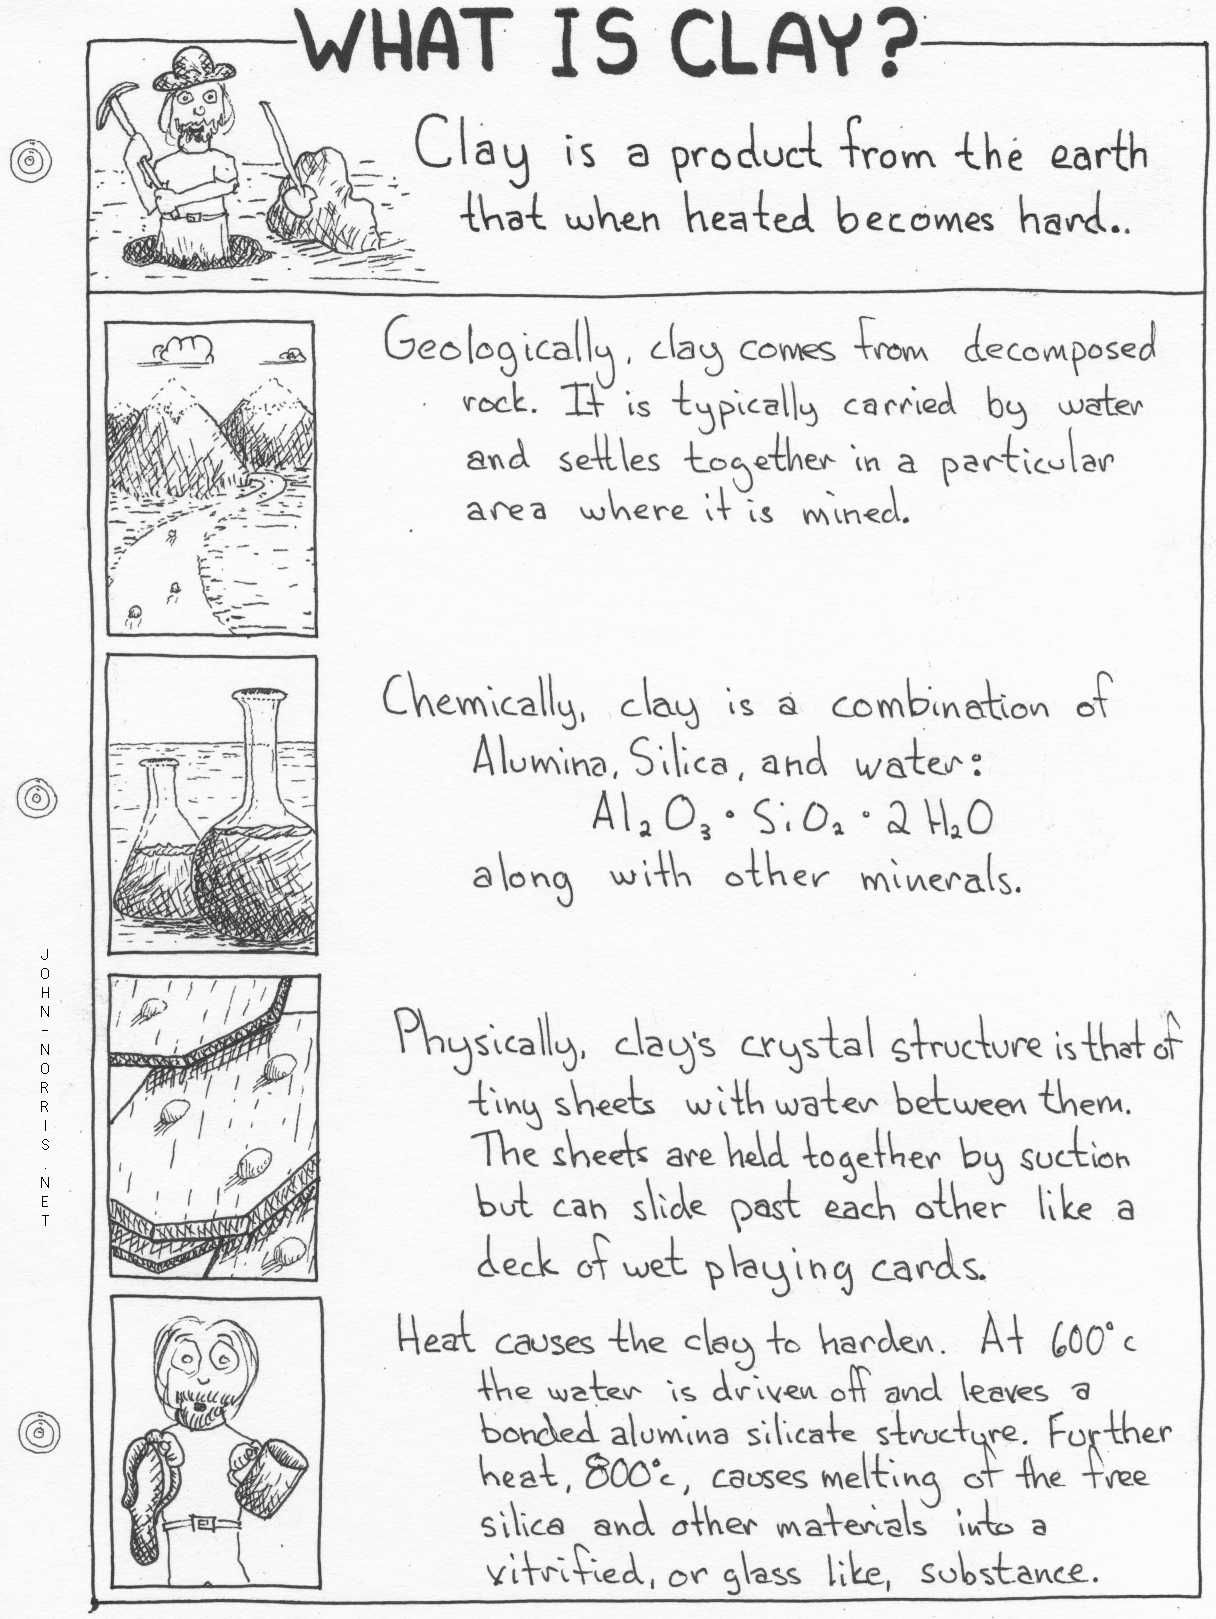 Series Of Handouts Cc License On Clay Glazing Firing